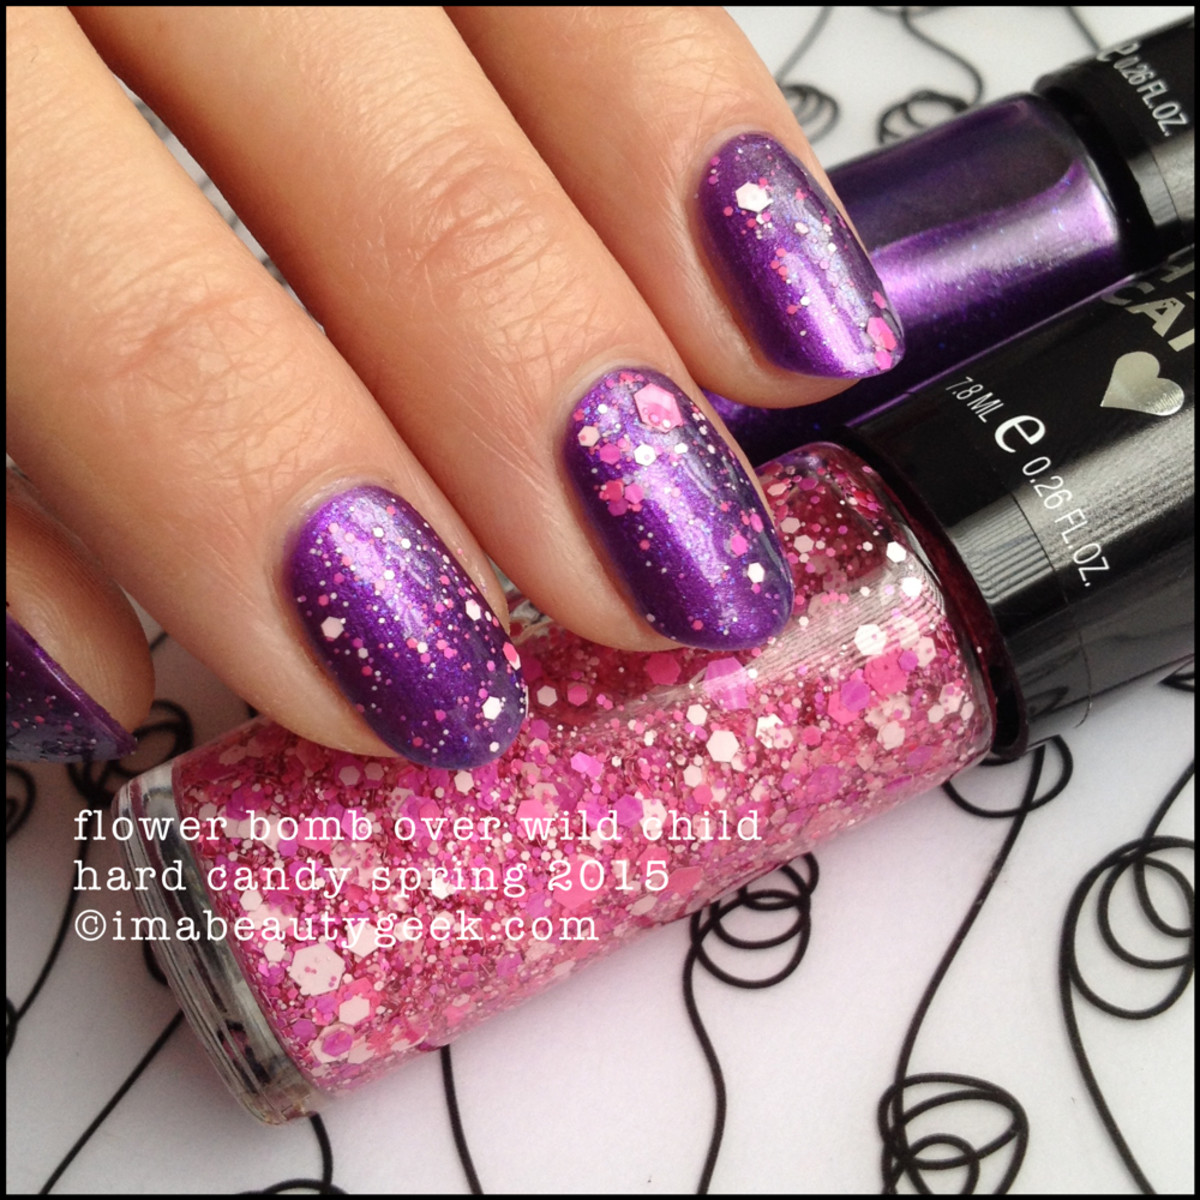 Hard Candy Nail Flower Bomb over Wild Child Spring 2015